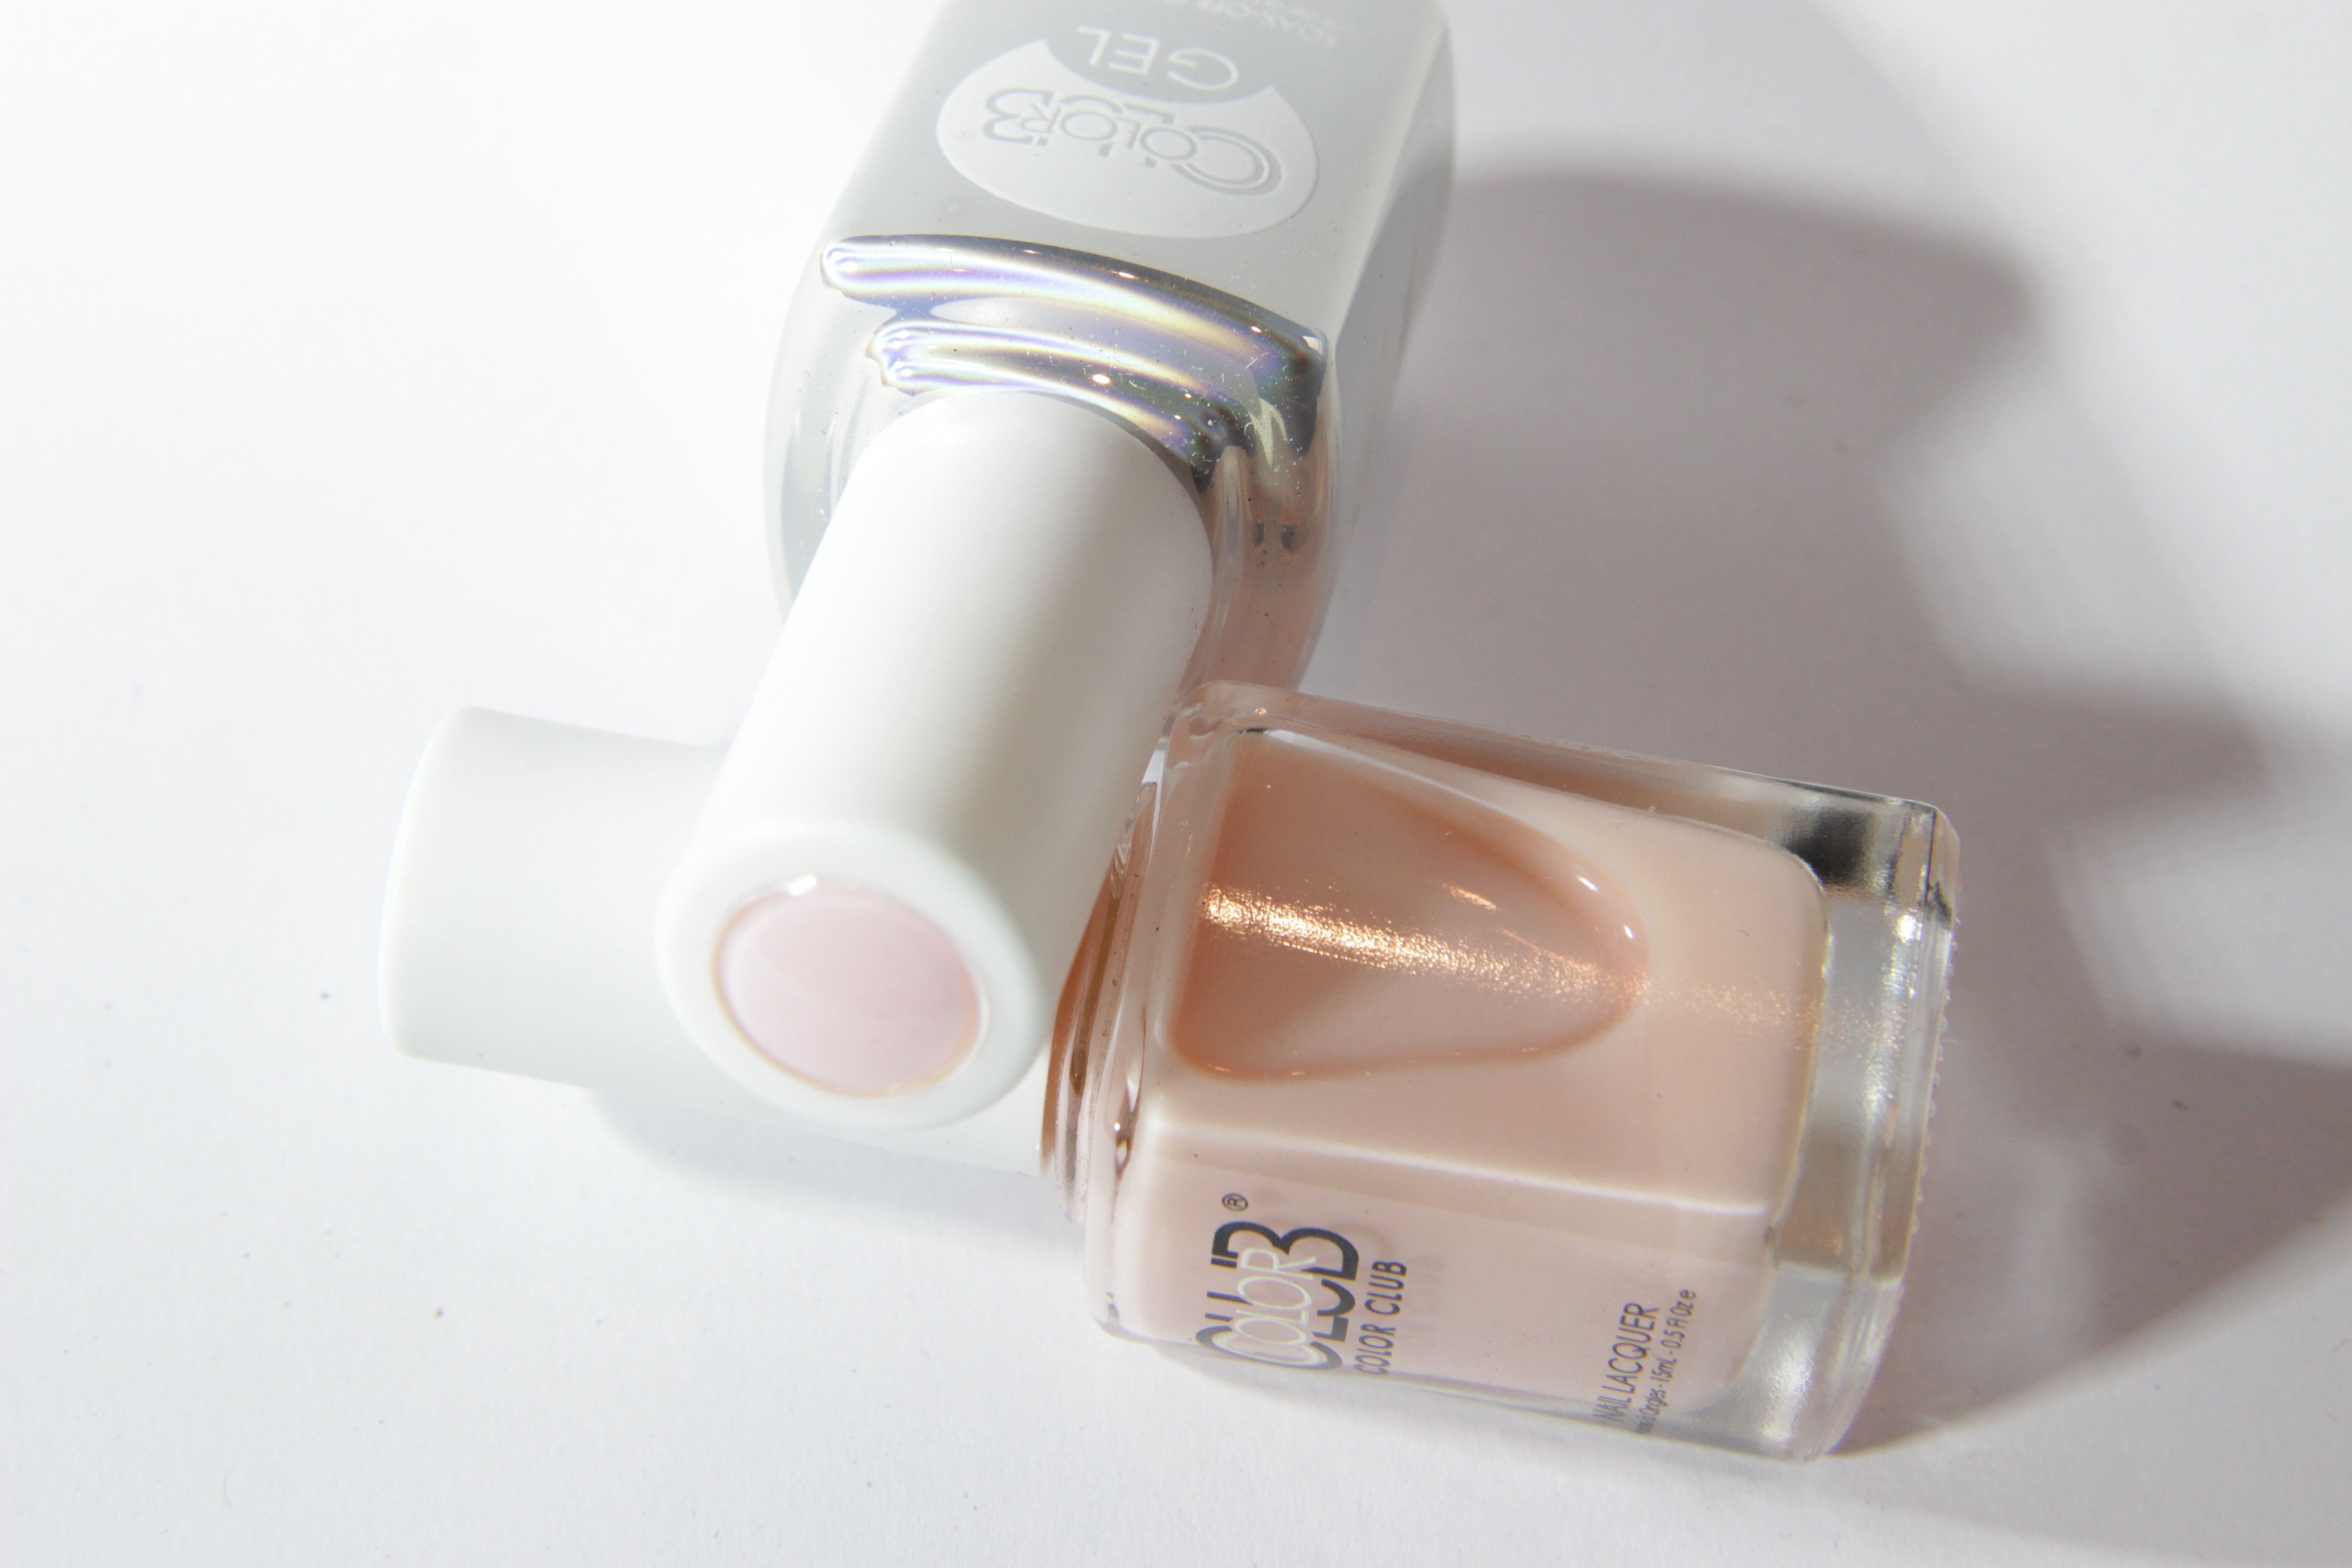 #0933 MORE AMOUR Color Club Duo Nagellack Nail Lacquer and Soak-Off Gel Polish nude hautnah rosa